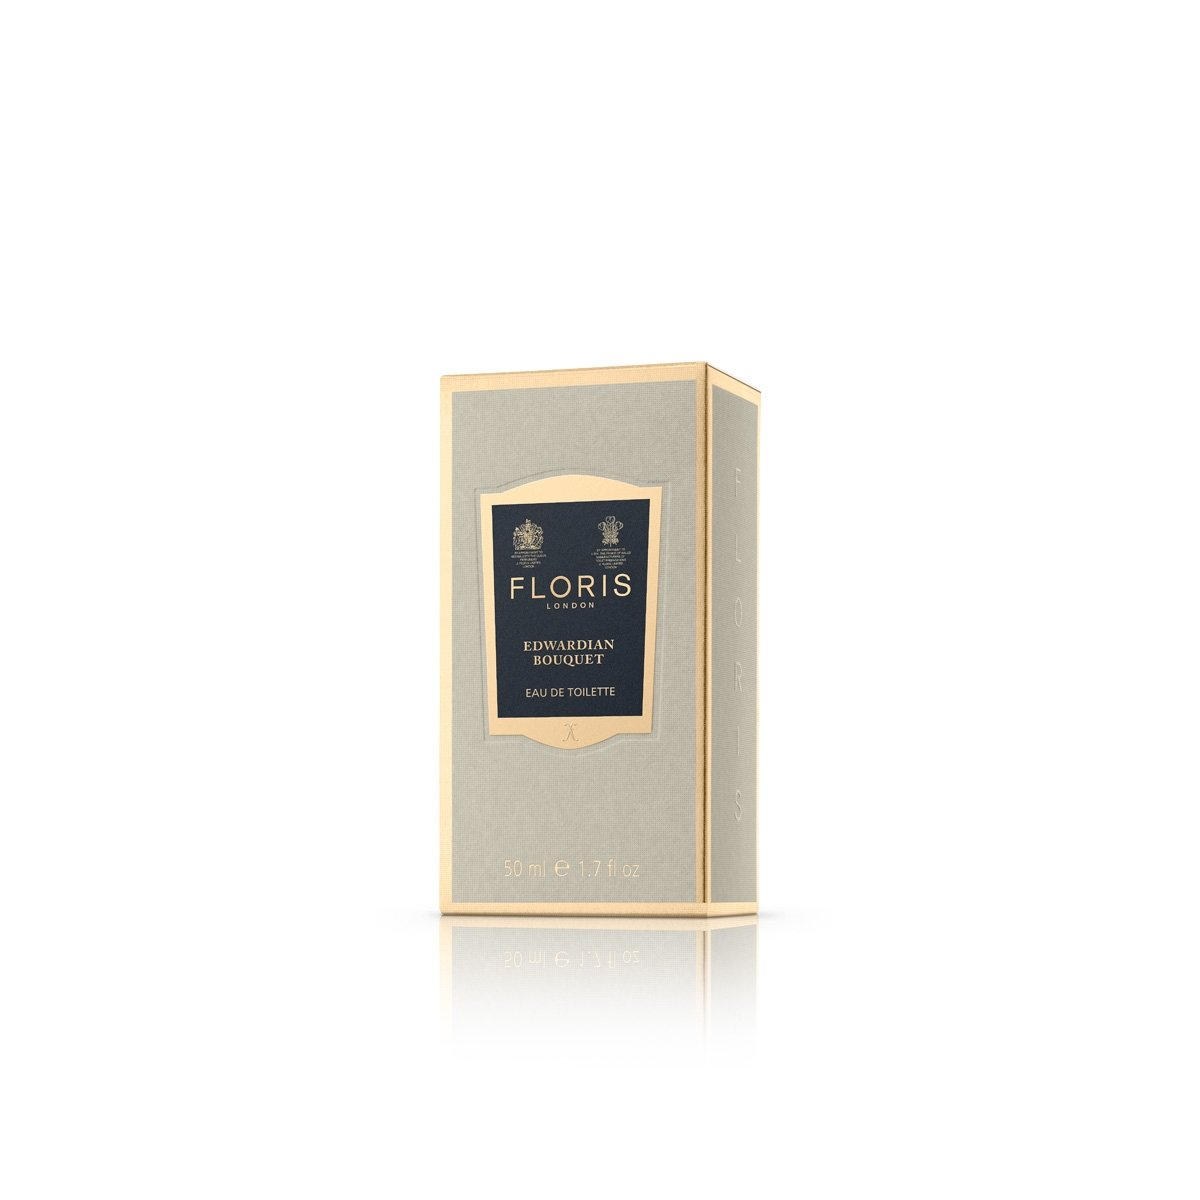 Edwardian Bouquet - Eau de Toilette 50ml